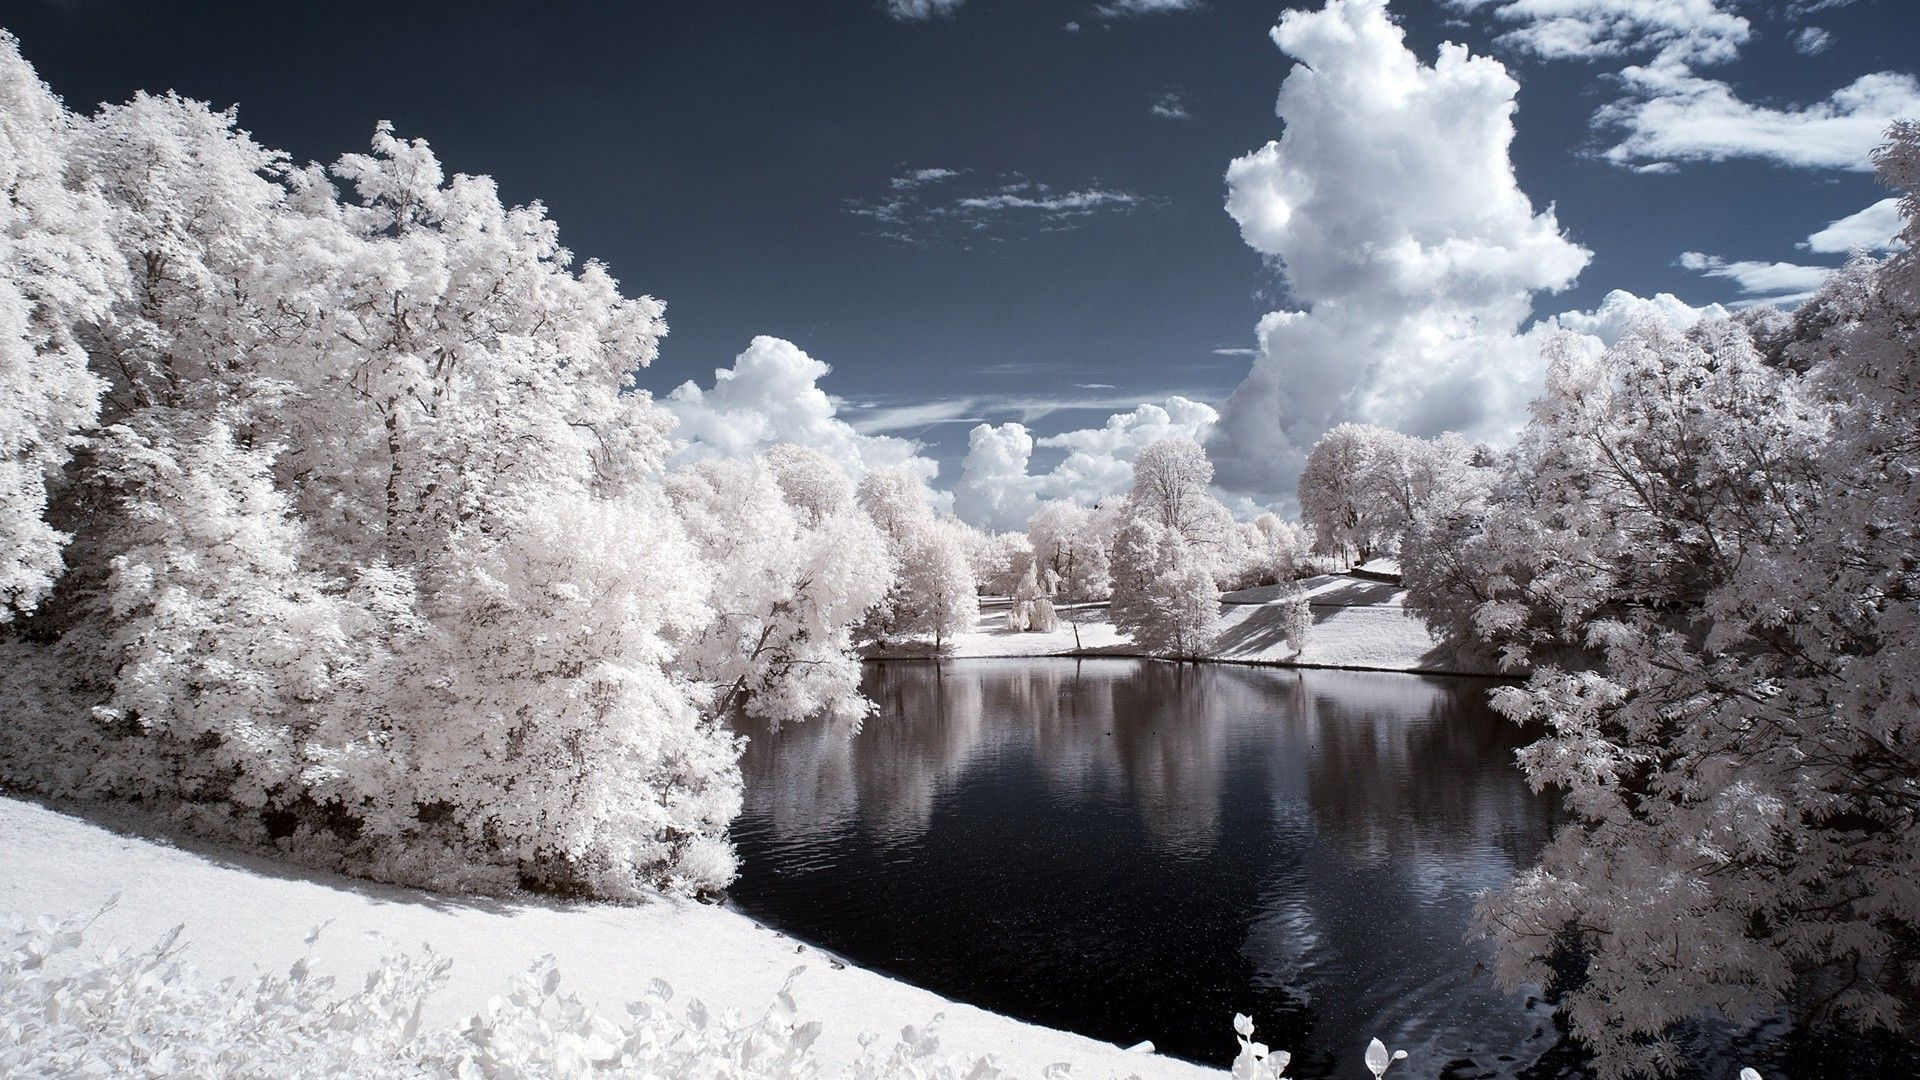 Winter-landscape-wallpaper-8-Cool-Wallpapers